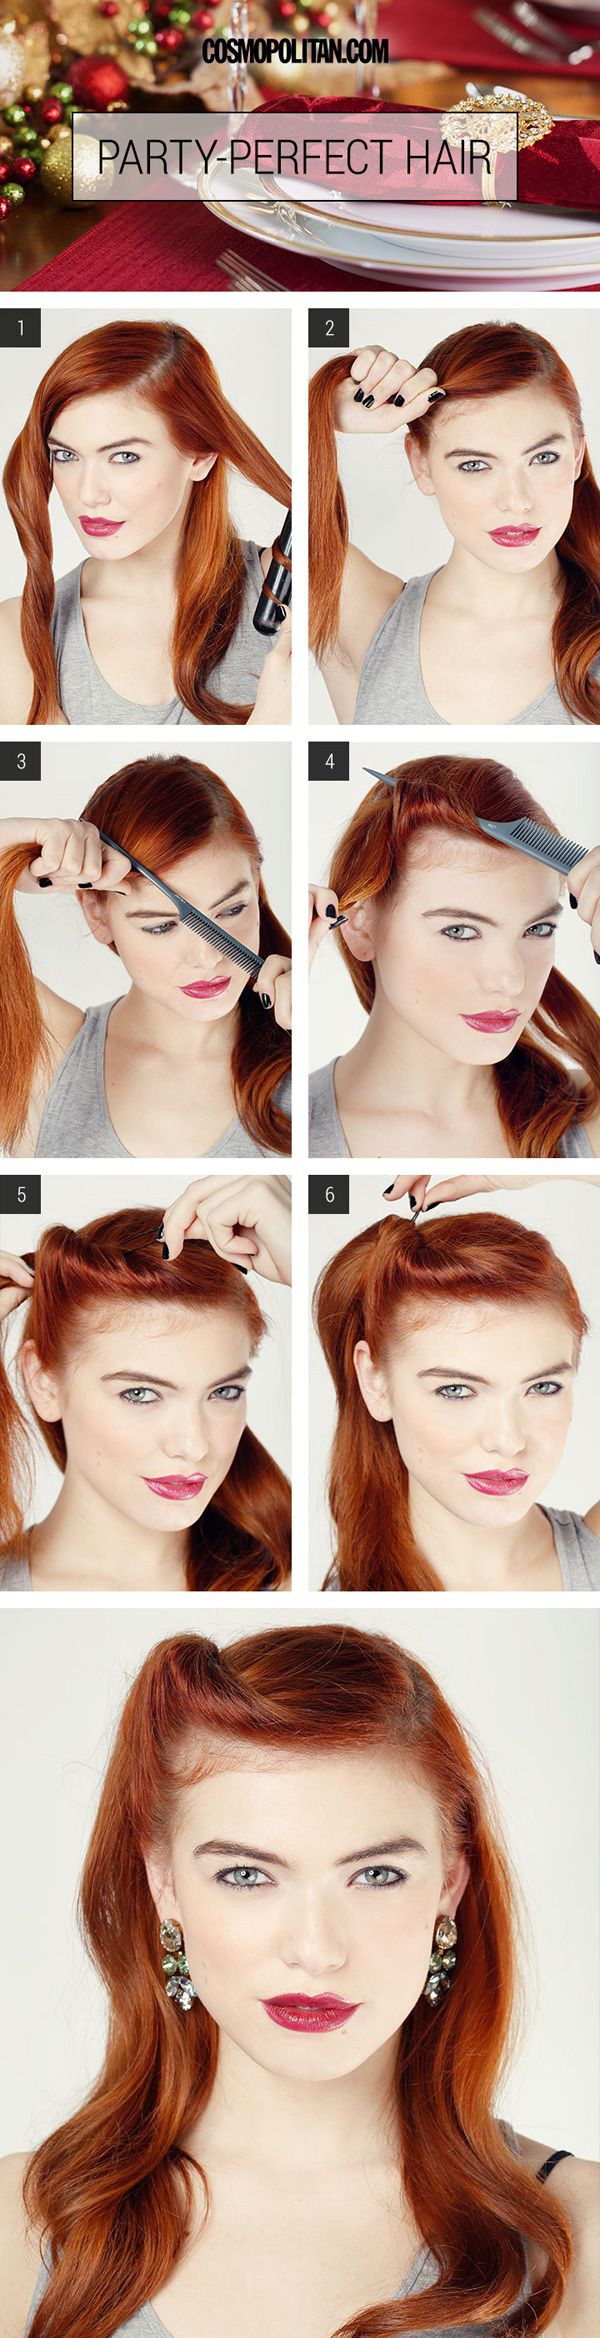 best maquillaje y peinados make up and hairstyles images on